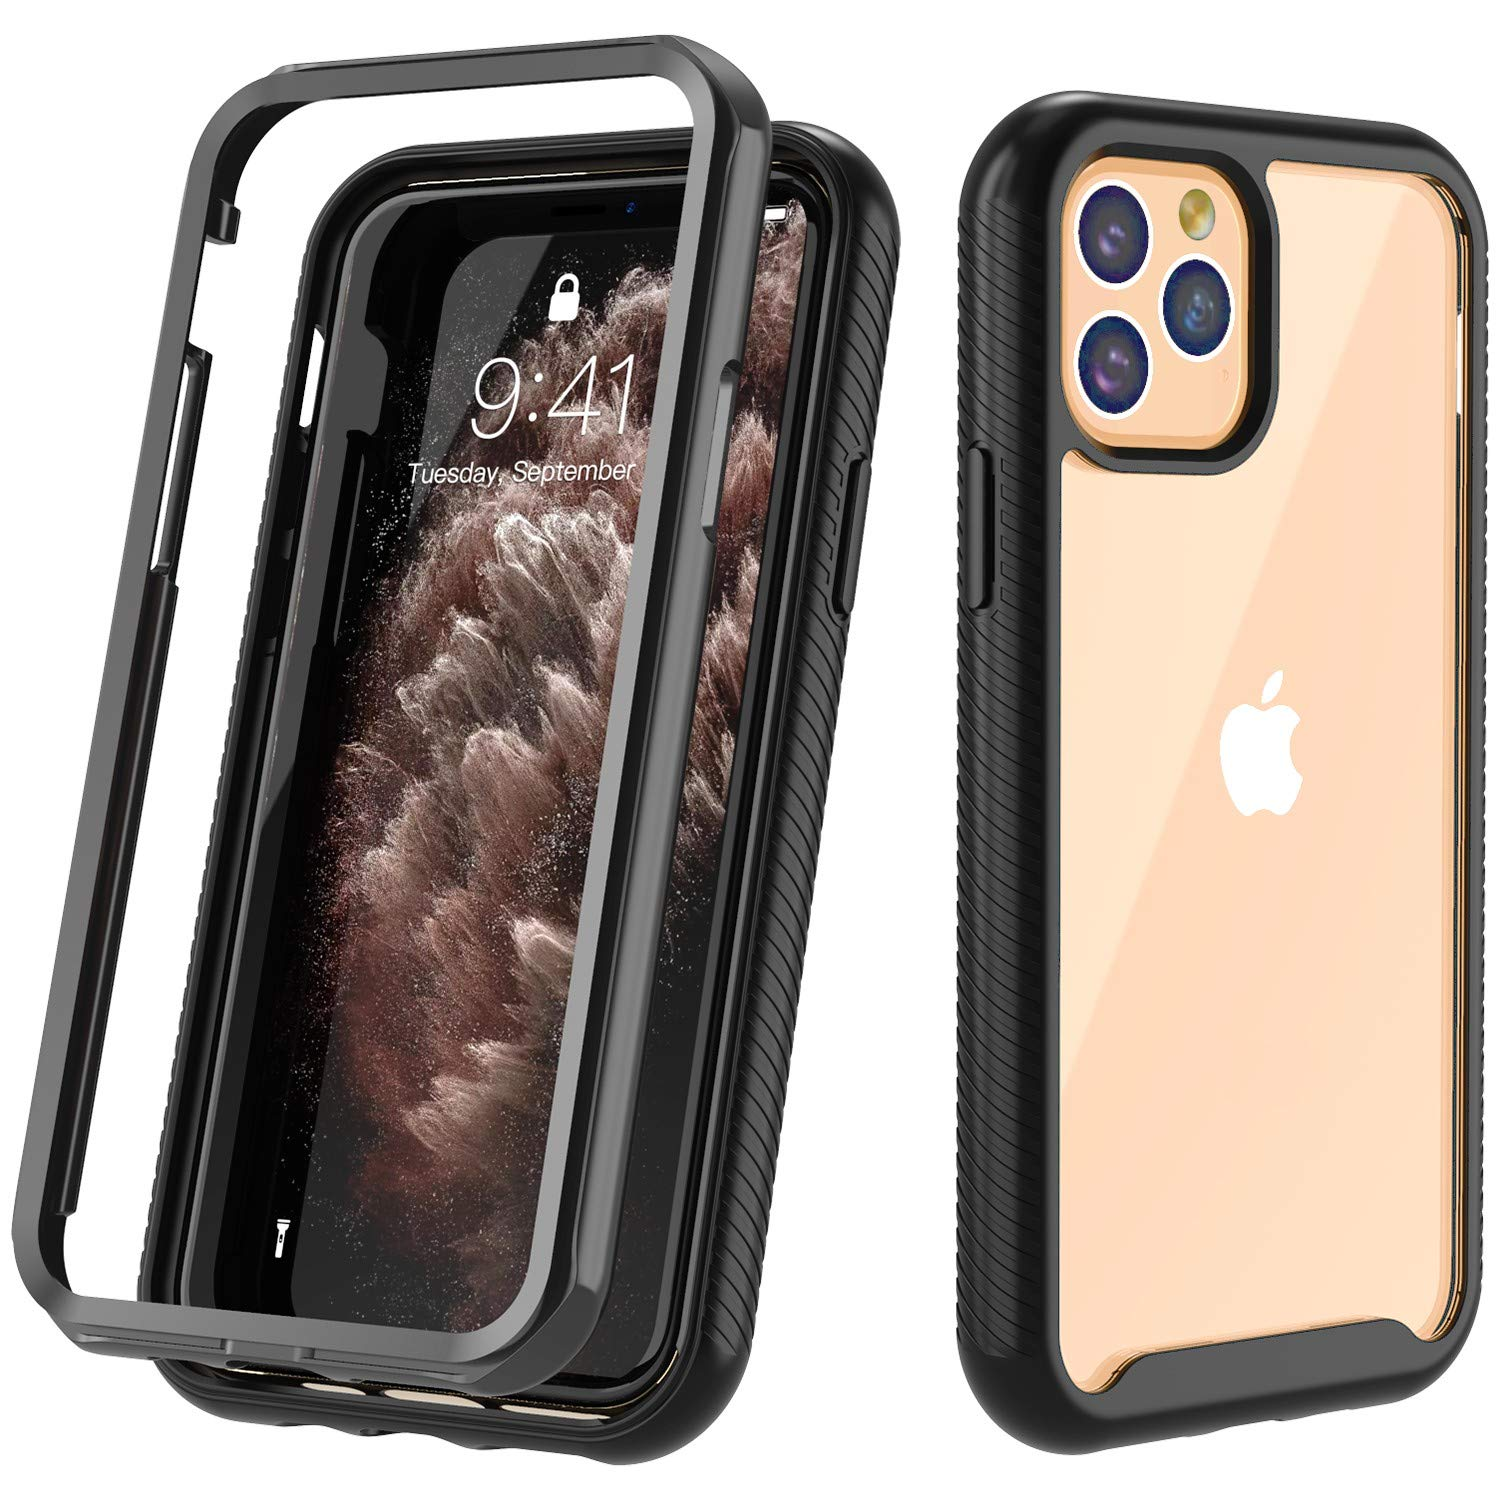 Touber Clear Case for iPhone 11 Pro Max, HD Clear Full Body Heavy Duty Protection, Shockproof Anti-Scratched Rugged Cover, iPhone 11 Pro Max Case 6.5 inch 2019 (Black/Clear)